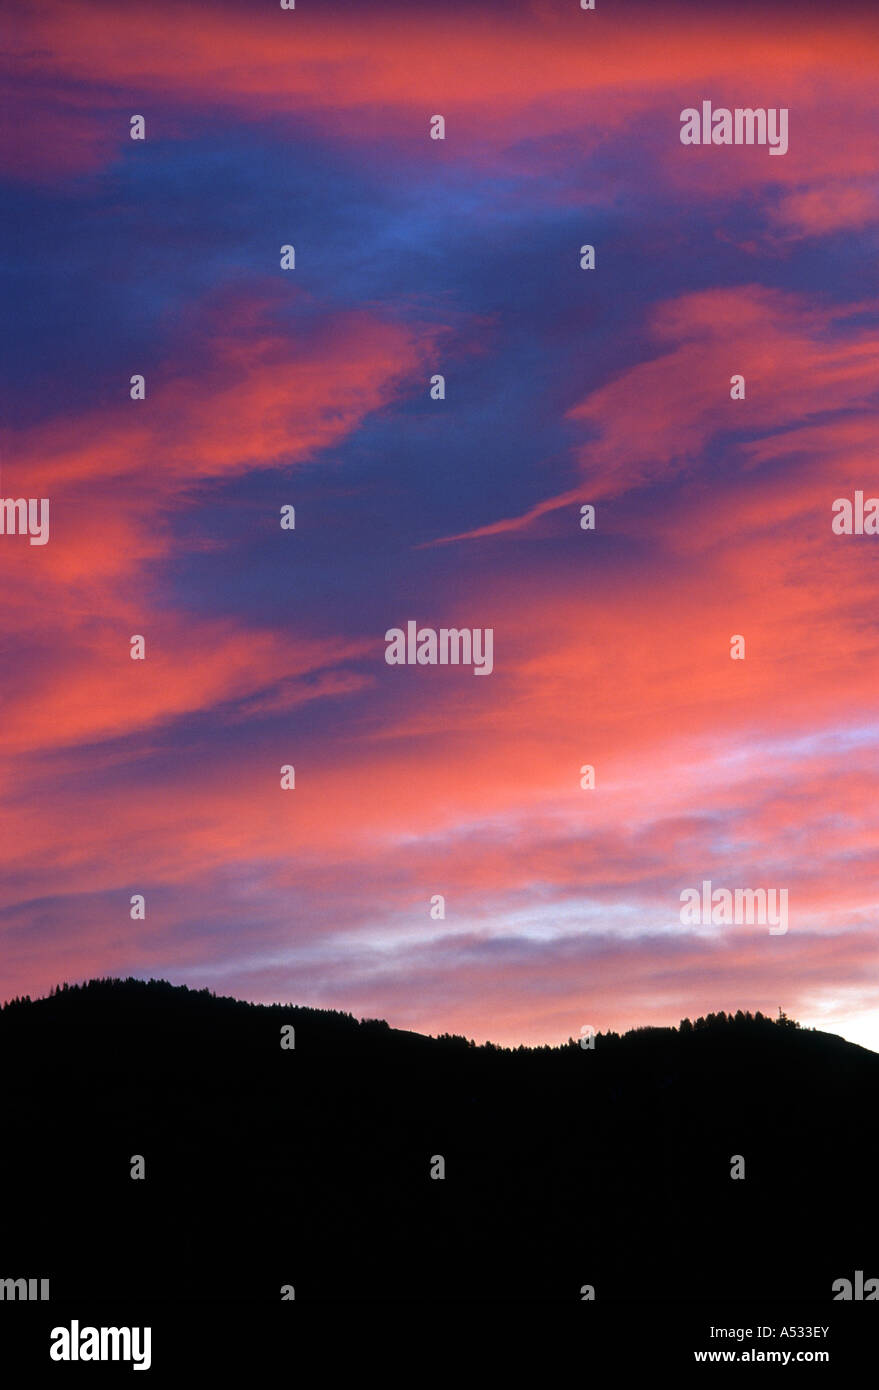 Brilliant sunset clouds over mountain ridges - Stock Image